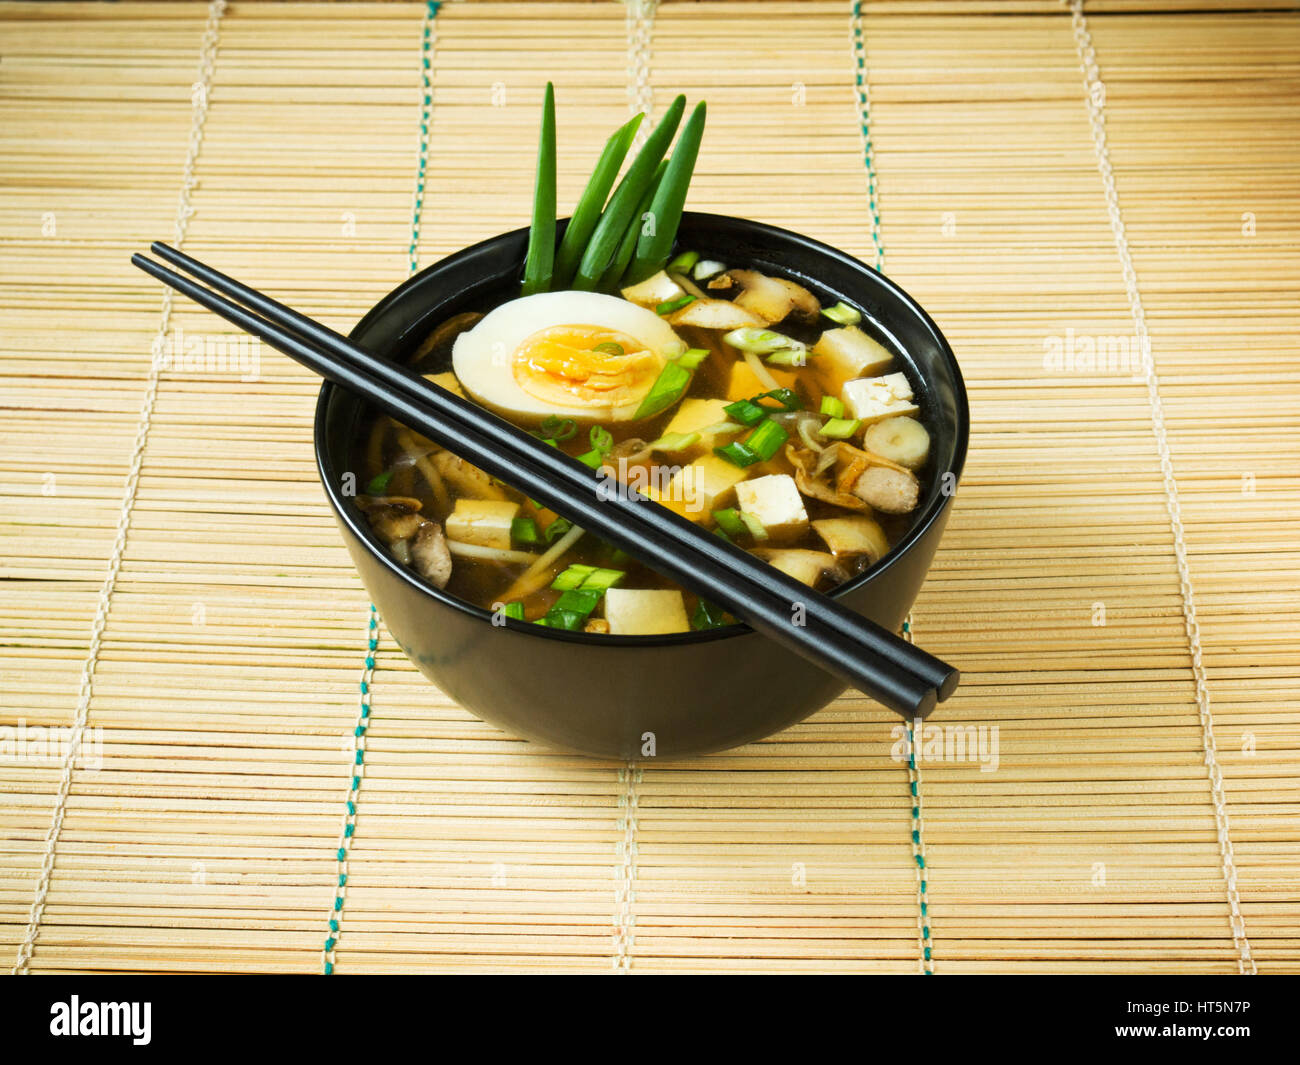 Japanese miso soup in black bowl on bamboo mat - Stock Image